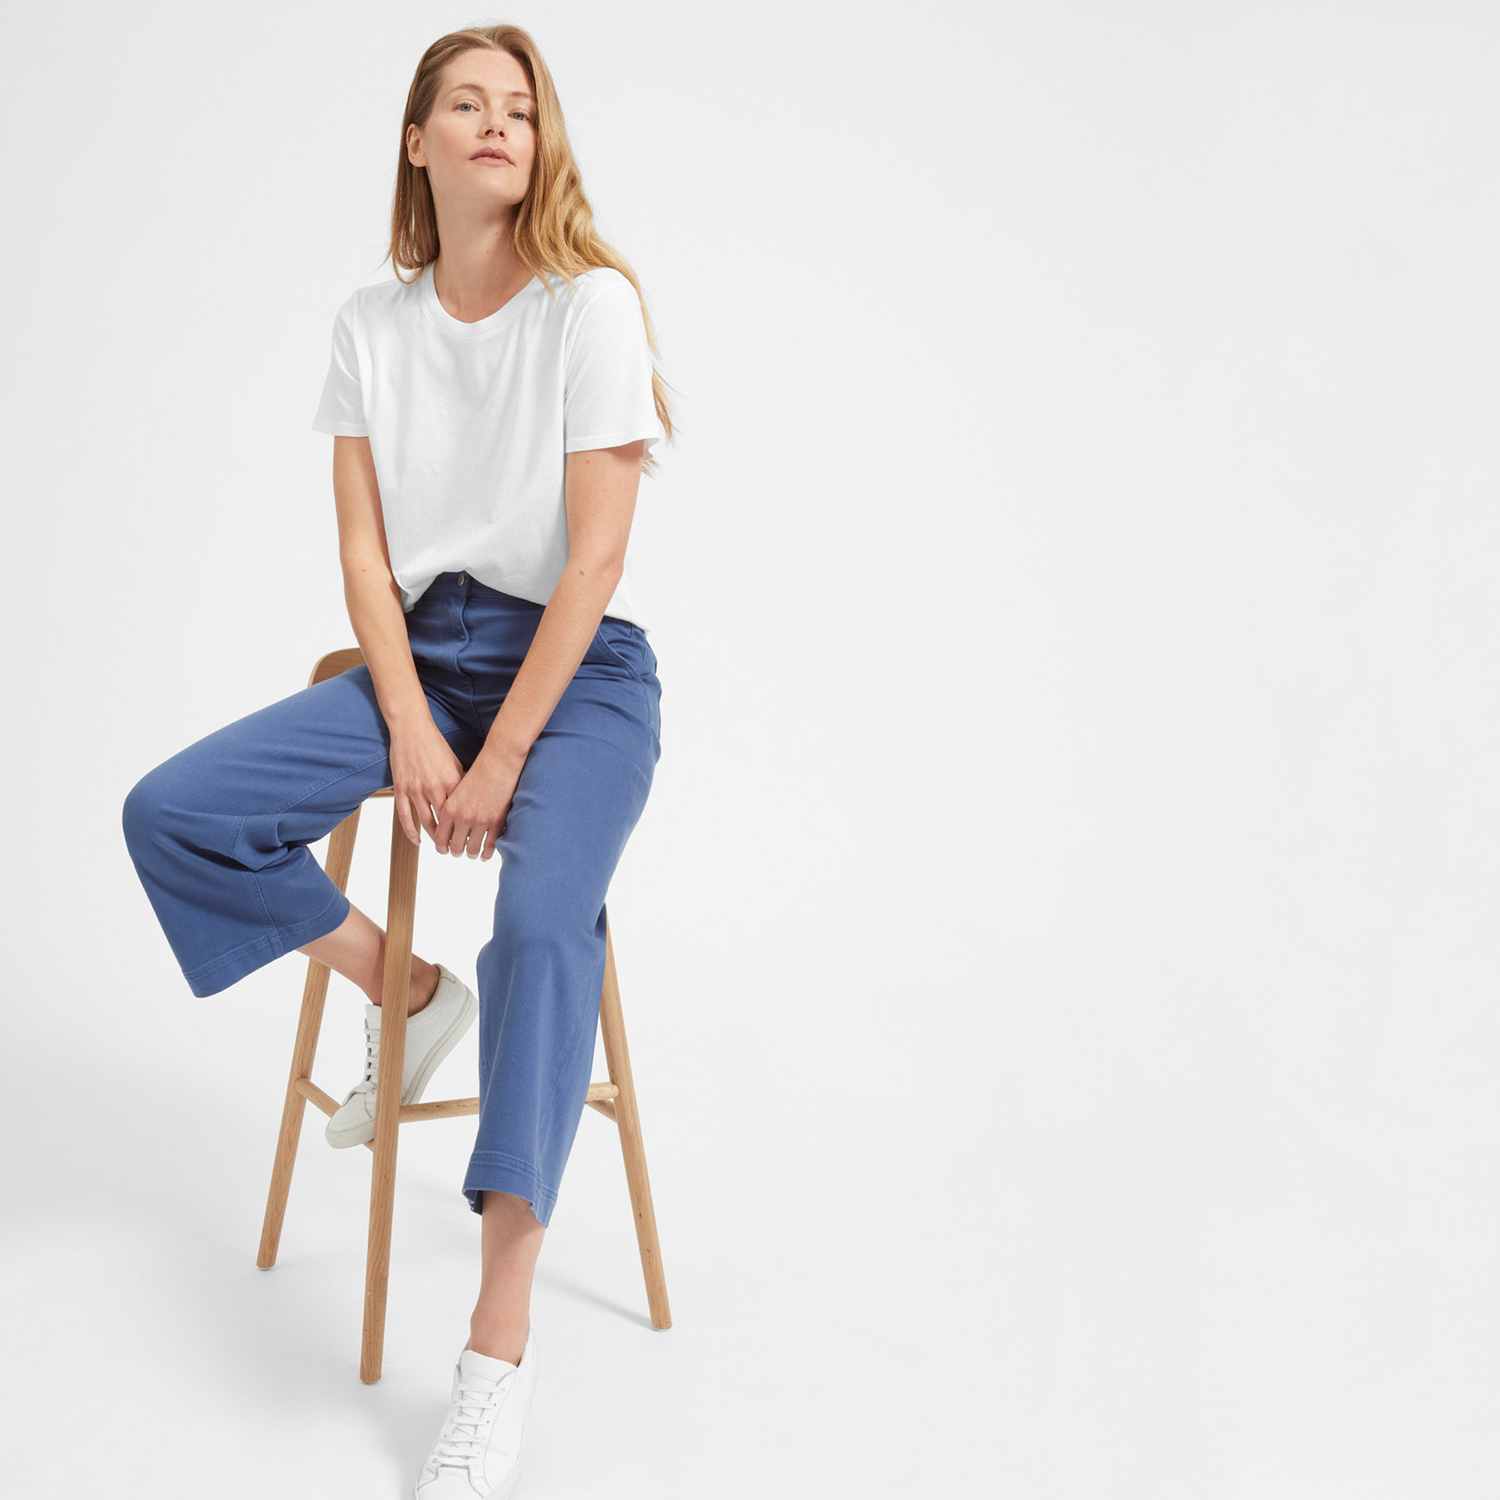 everlane white t shirt